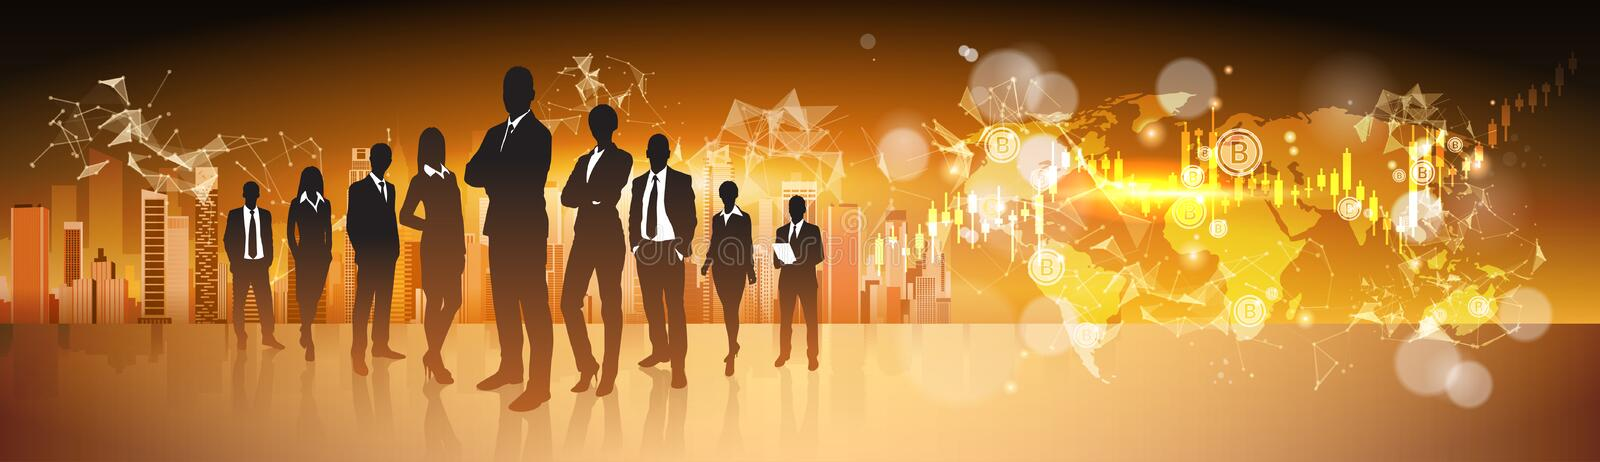 Crypto Currency Concept Silhouette Business People Group Standing Over World Map With Bitcoin Digital Web Money. Vector Illustration vector illustration